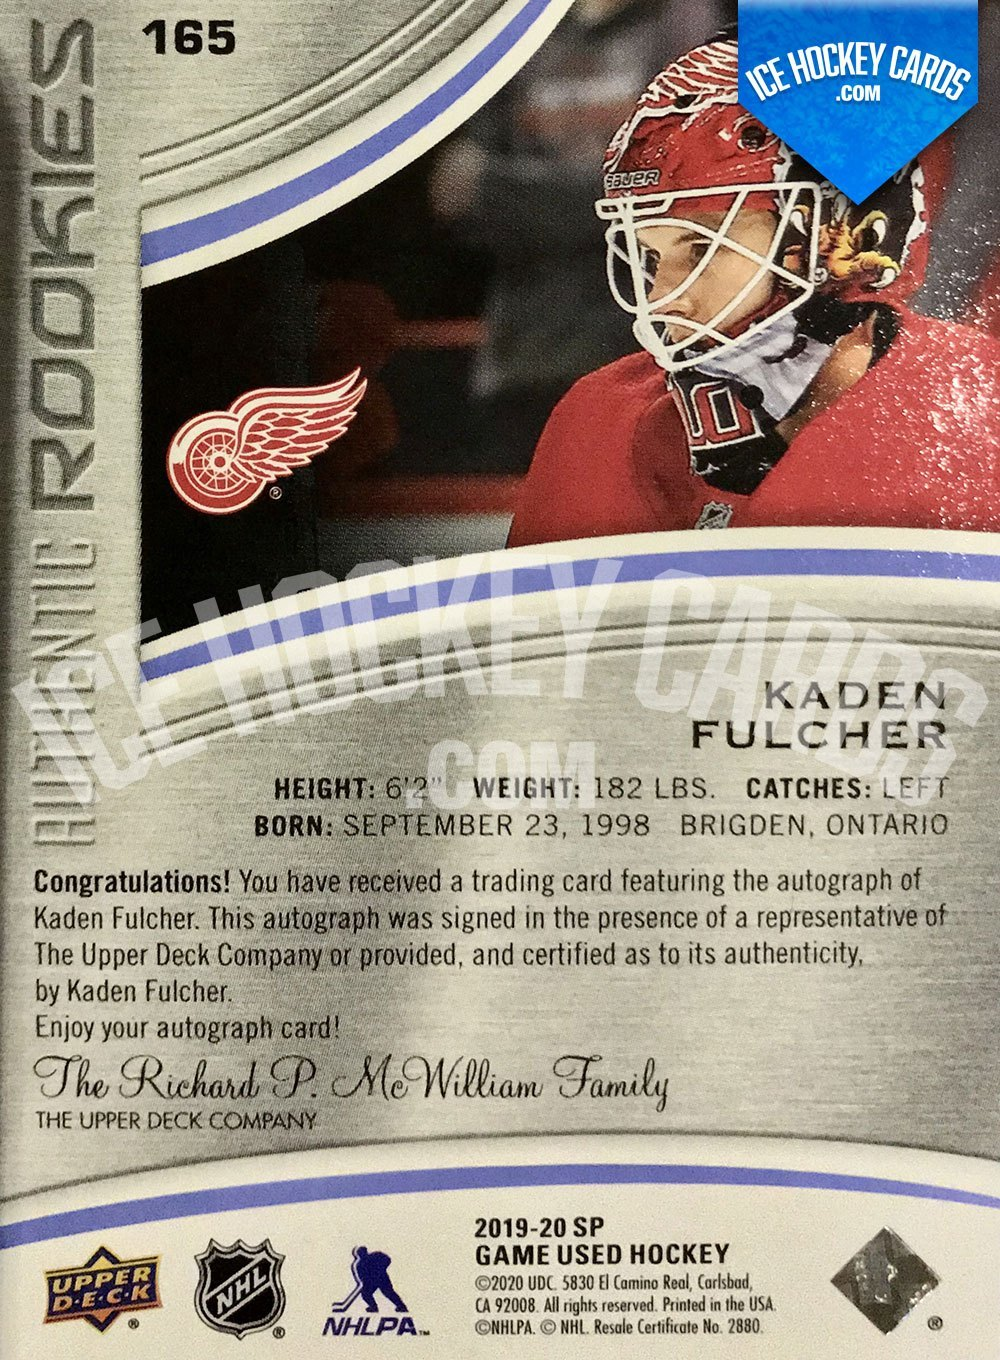 Upper Deck - SP Game Used 2019-20 - Kaden Fulcher Authentic Rookies Auto RC back